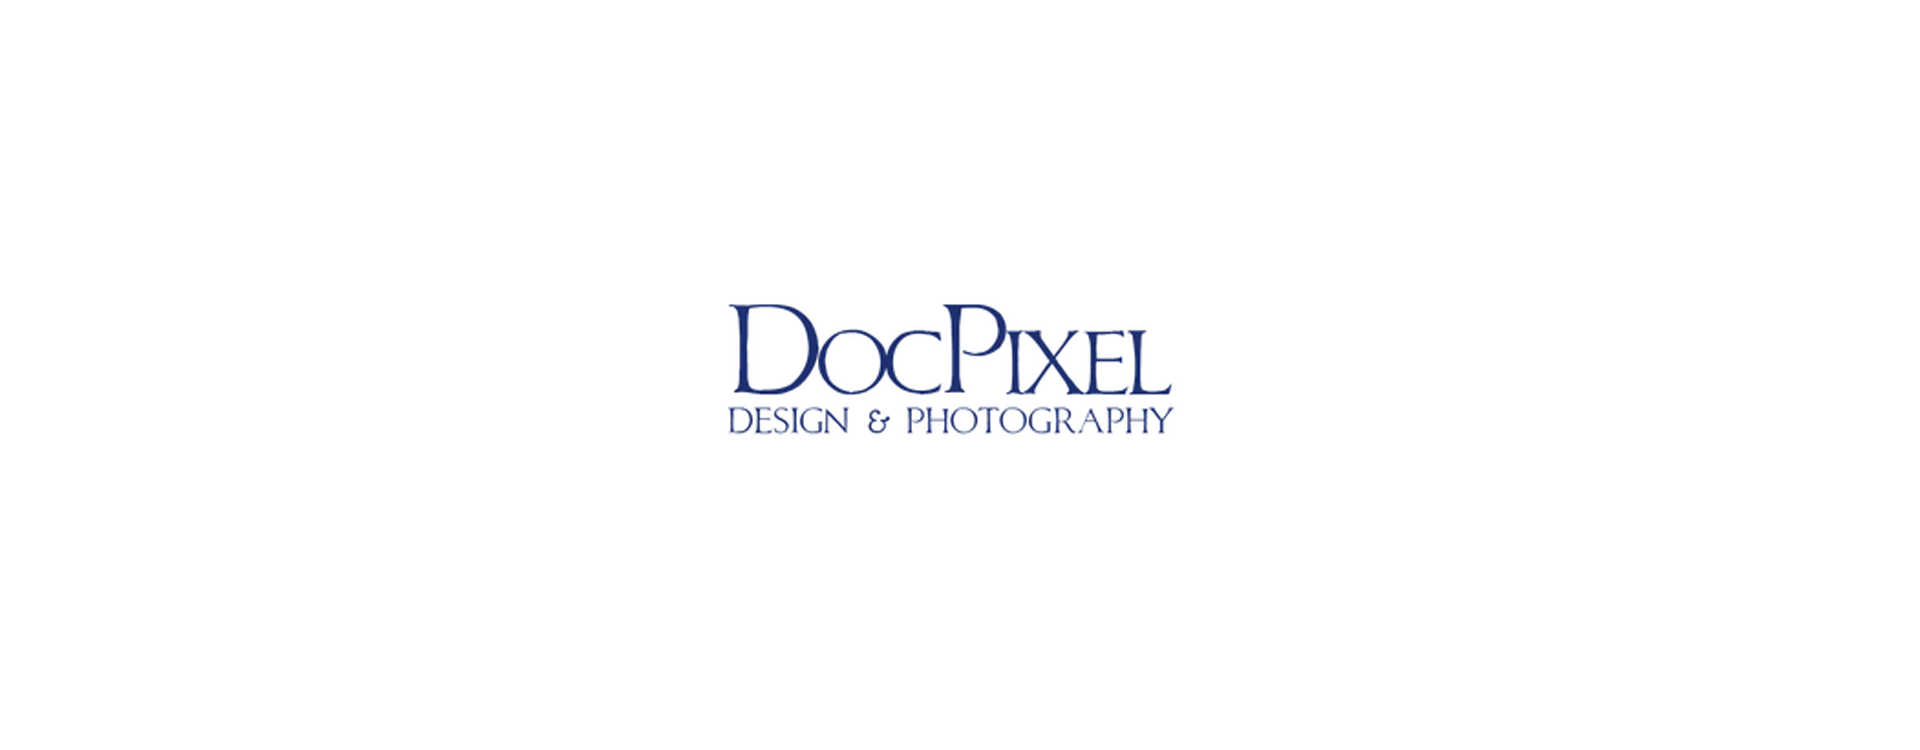 DocPixel Design & Photography